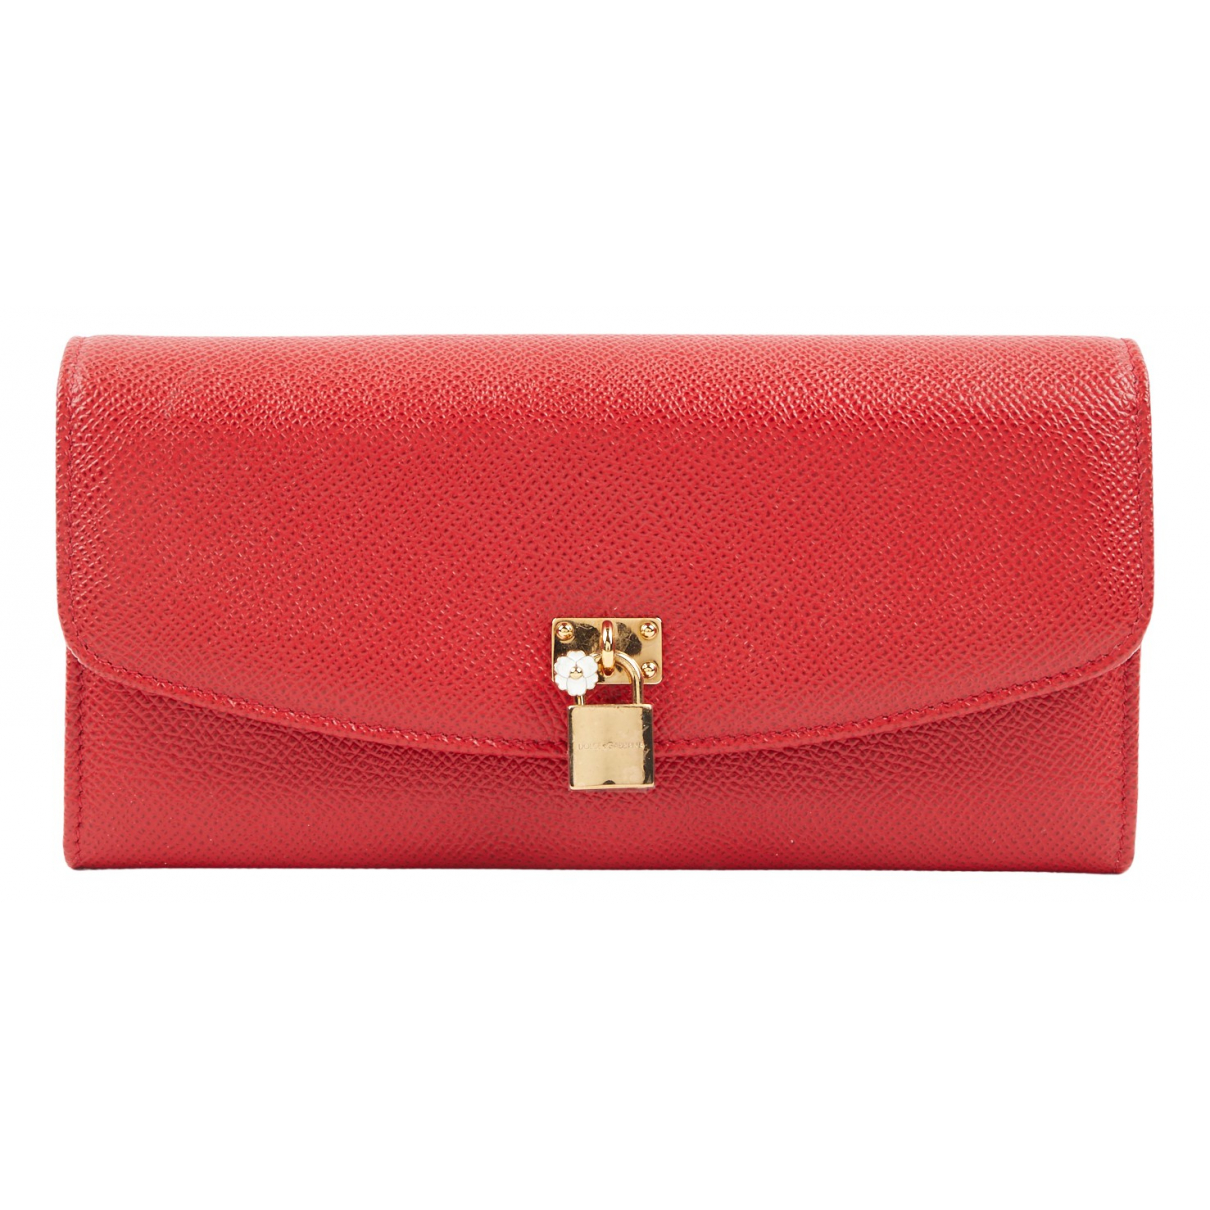 Dolce & Gabbana N Red Leather Purses, wallet & cases for Women N